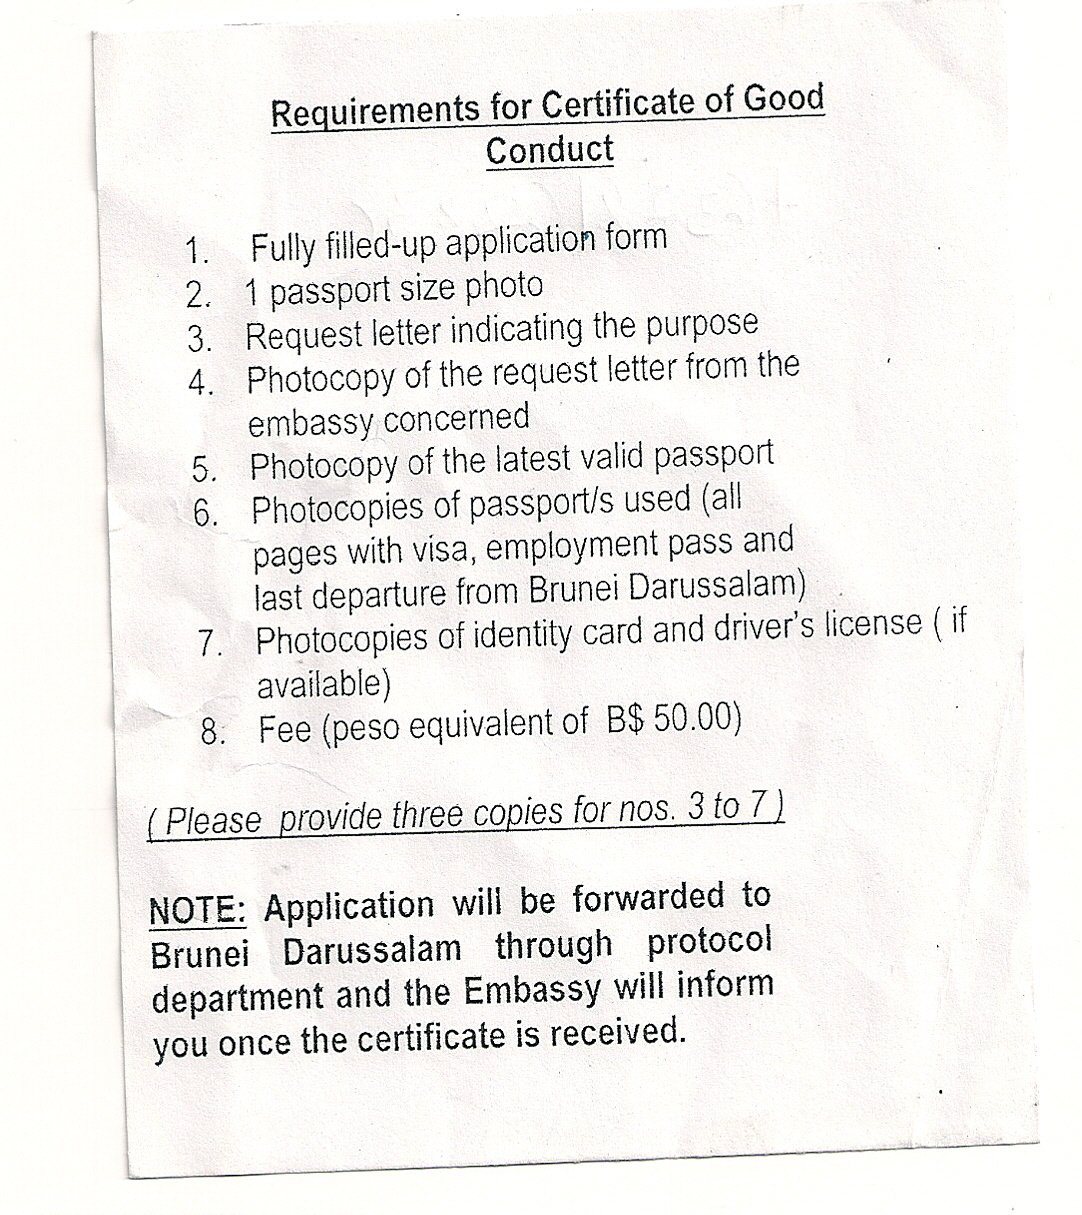 Police clearance from brunei us embassy and consulate discussion post 78899 0 70730200 1289807243thumbg xflitez Image collections